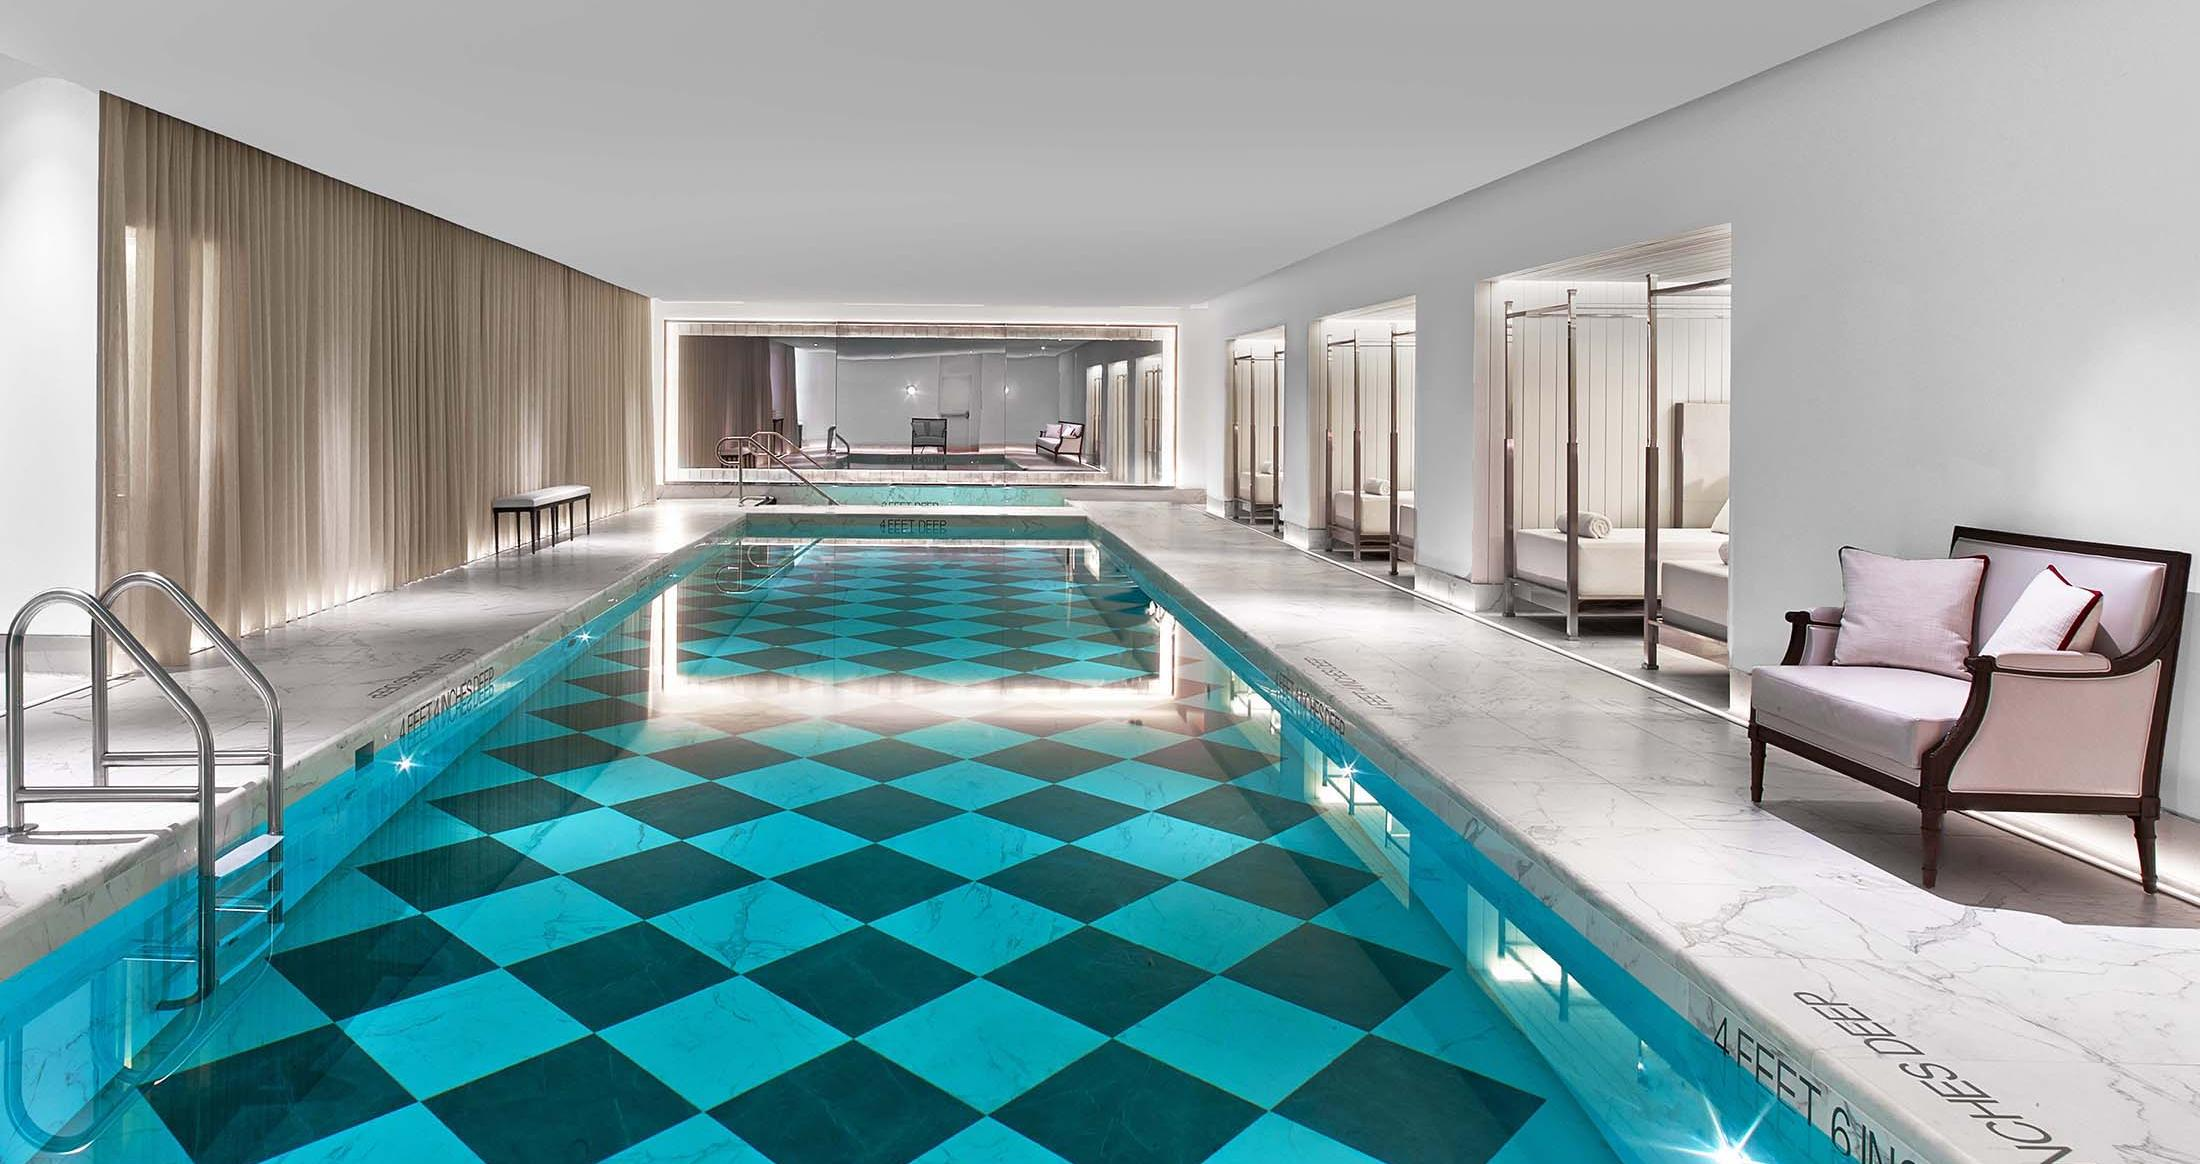 Baccarat Hotel New York pool spa